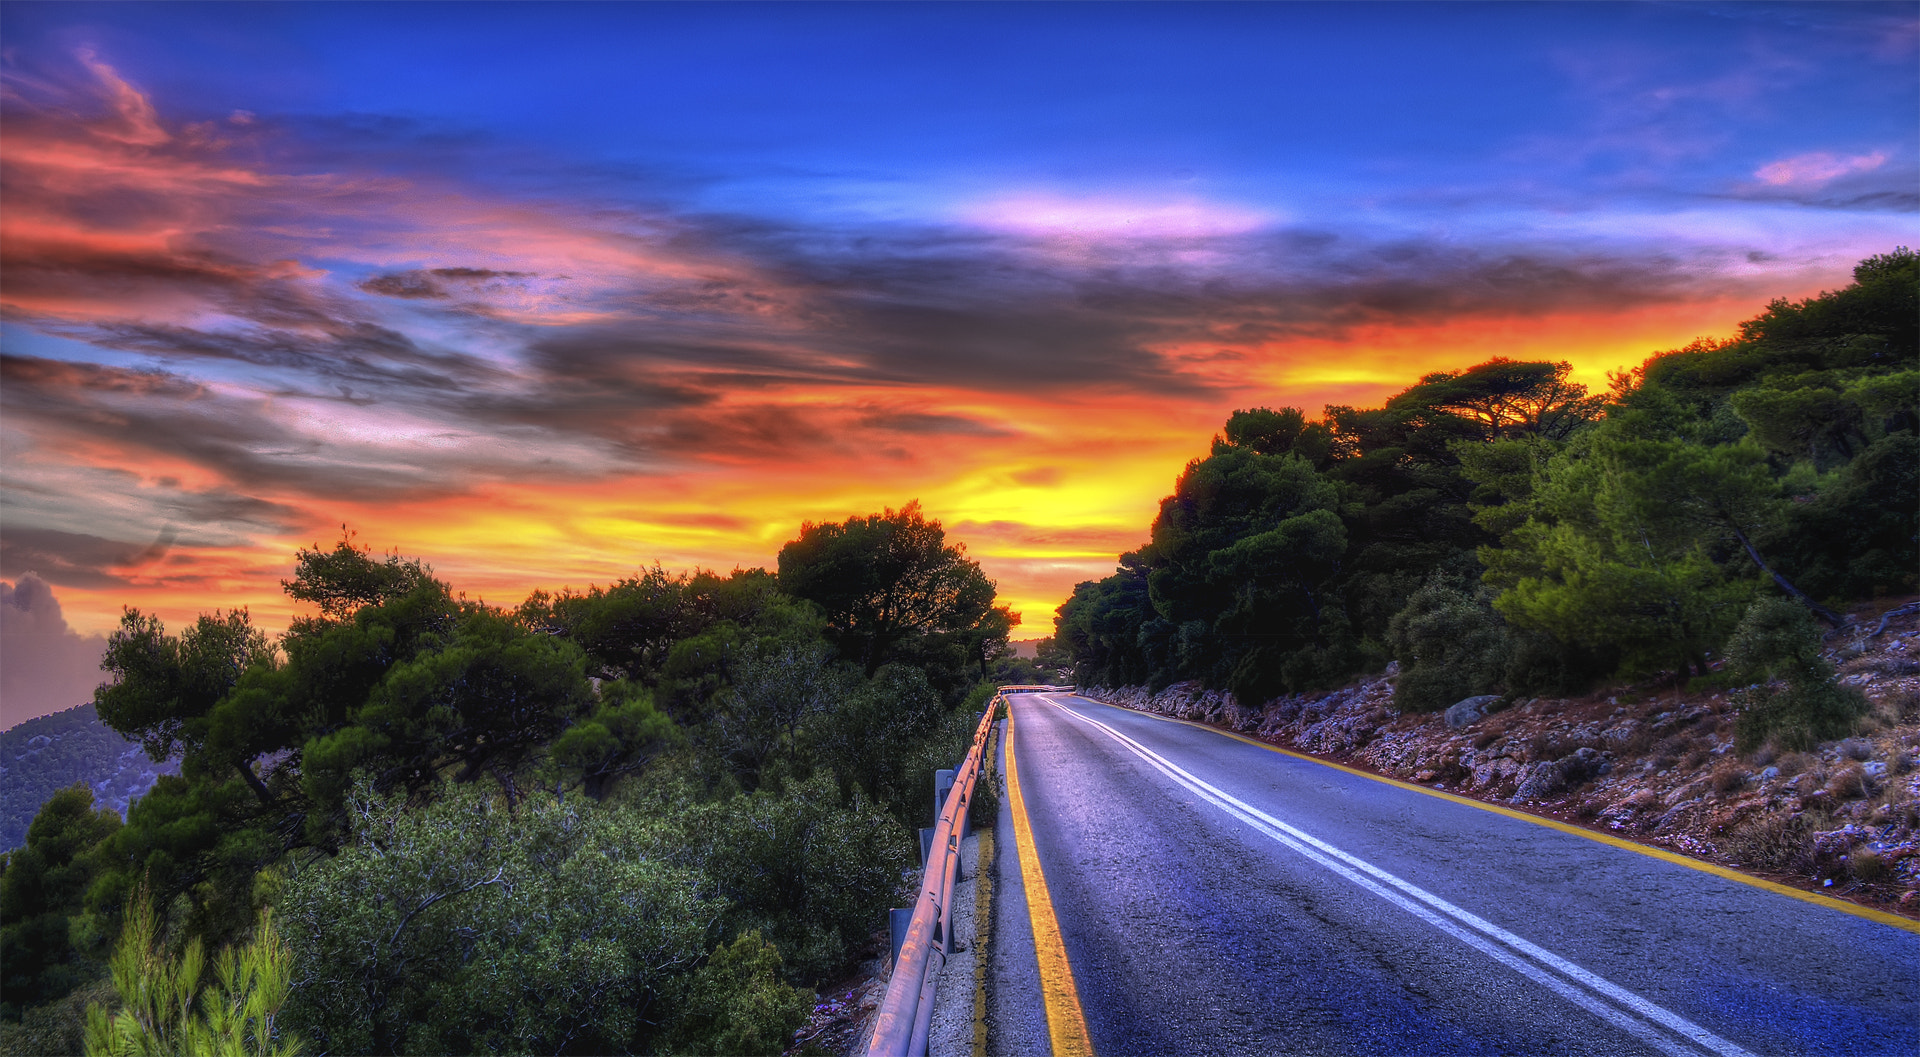 Photograph A Road by Antonis Karalis on 500px